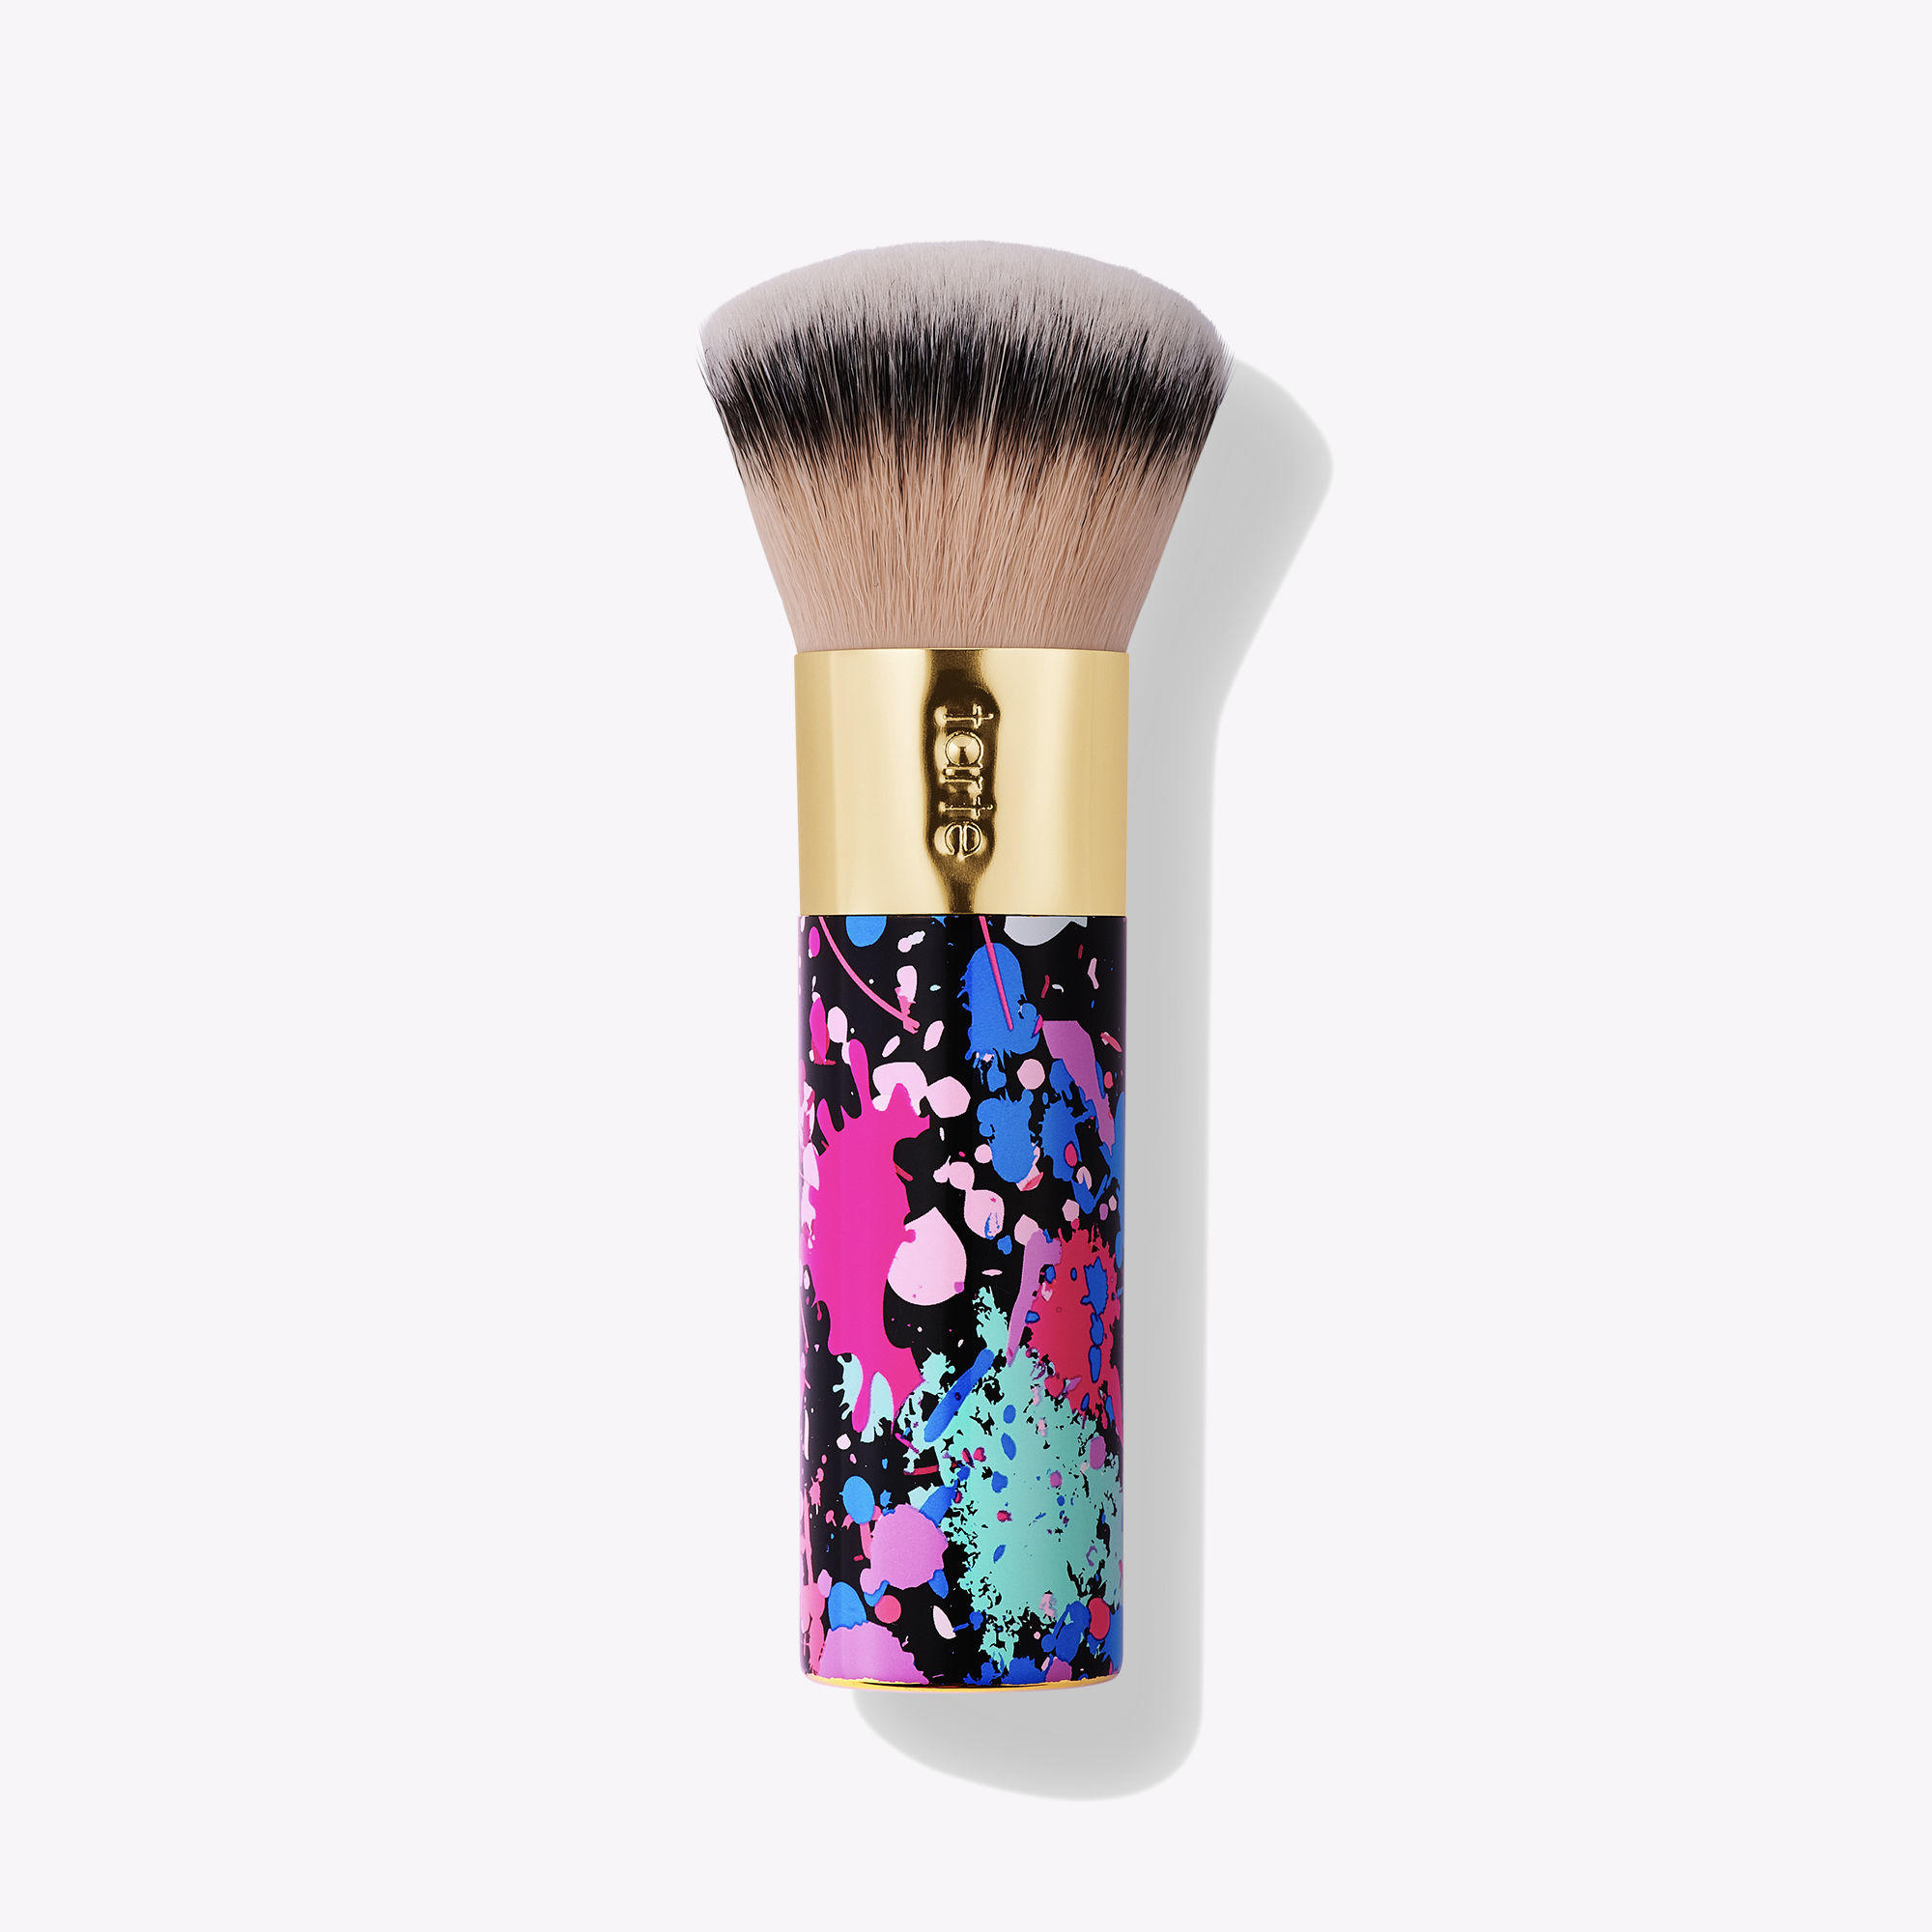 Tarte The Buffer Airbrush Finish Foundation Brush Paint Collection